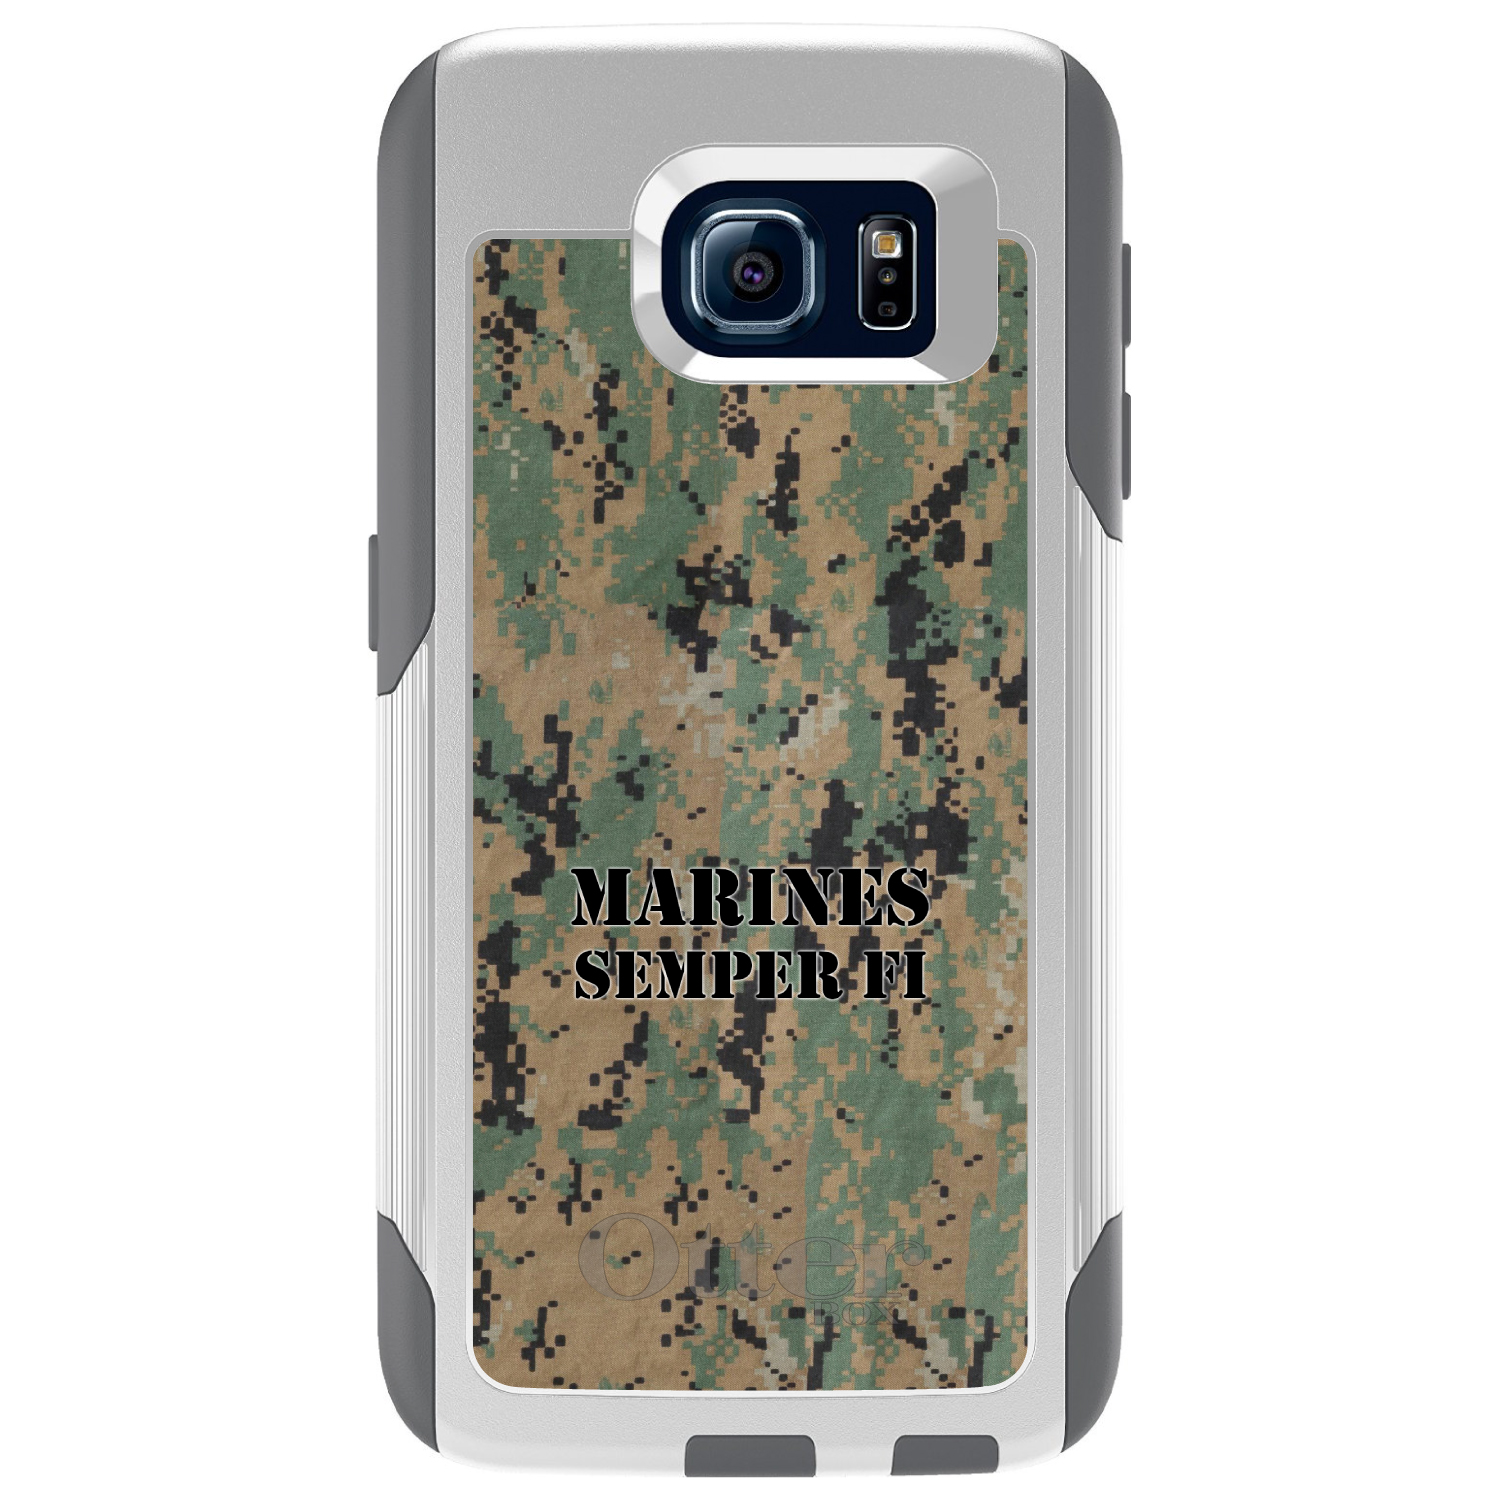 DistinctInk™ Custom White OtterBox Commuter Series Case for Samsung Galaxy S6 - Camo Marines Semper Fi